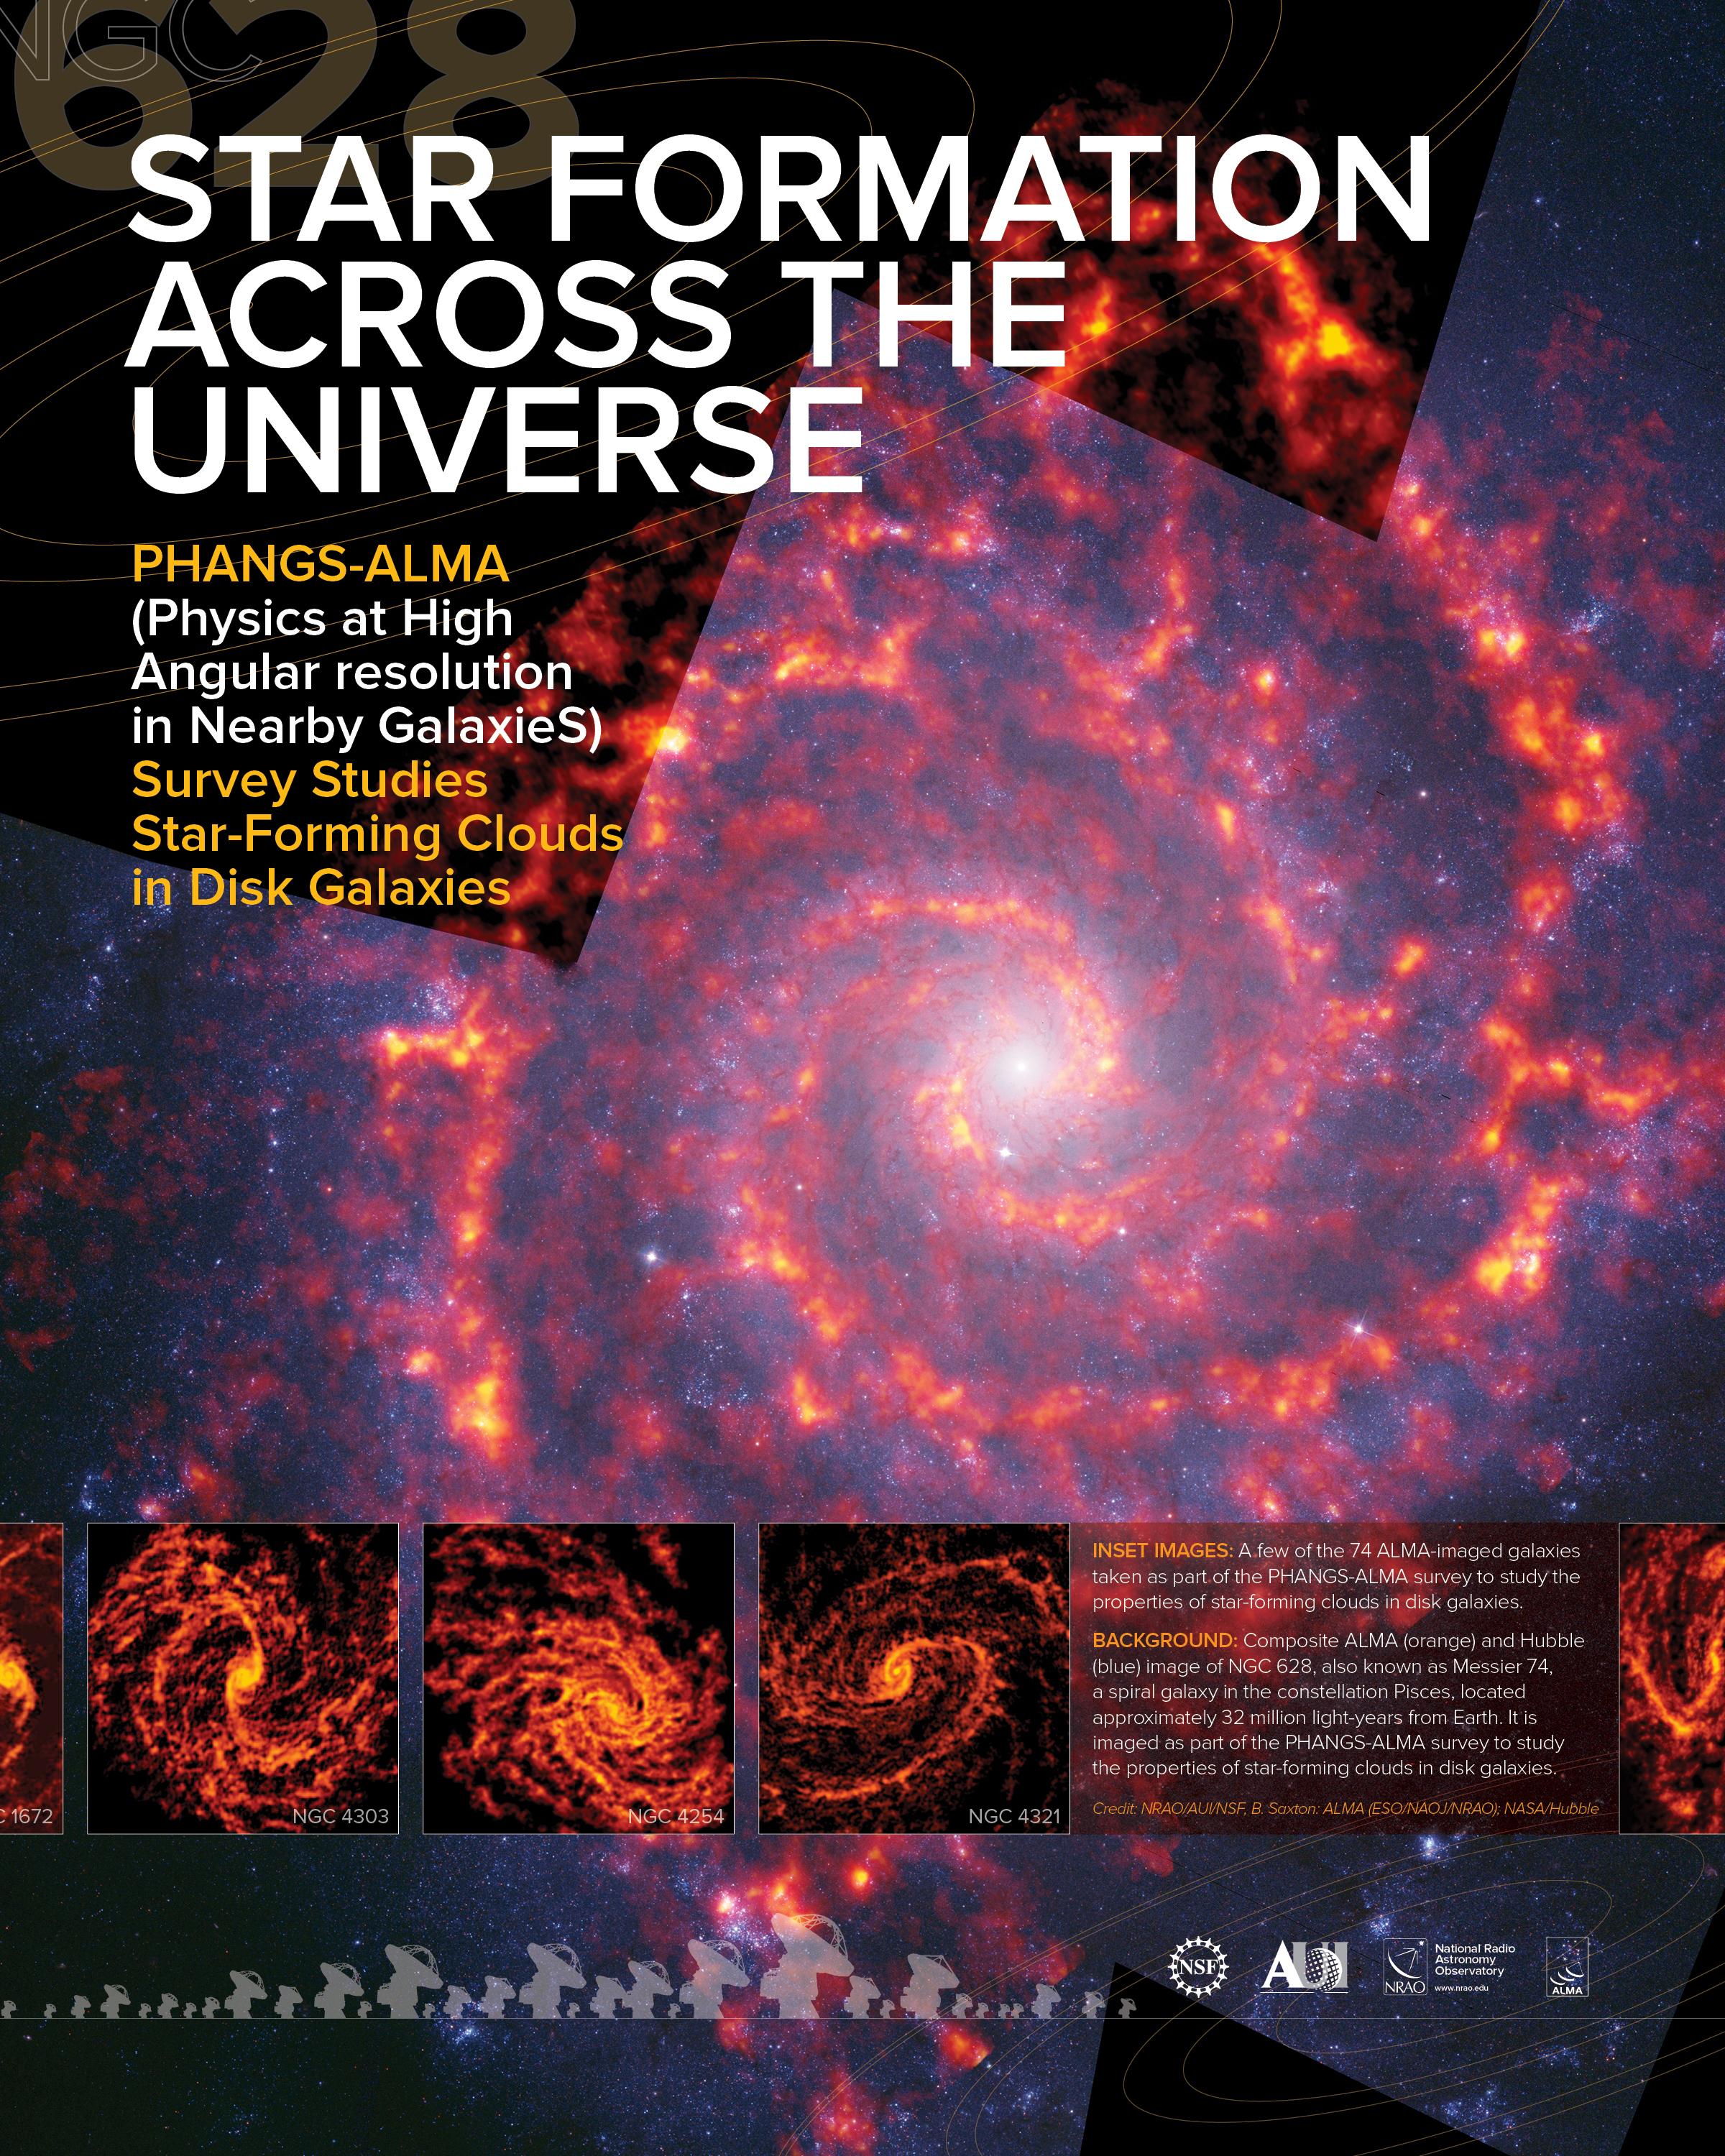 Star Formation Across the Universe Poster